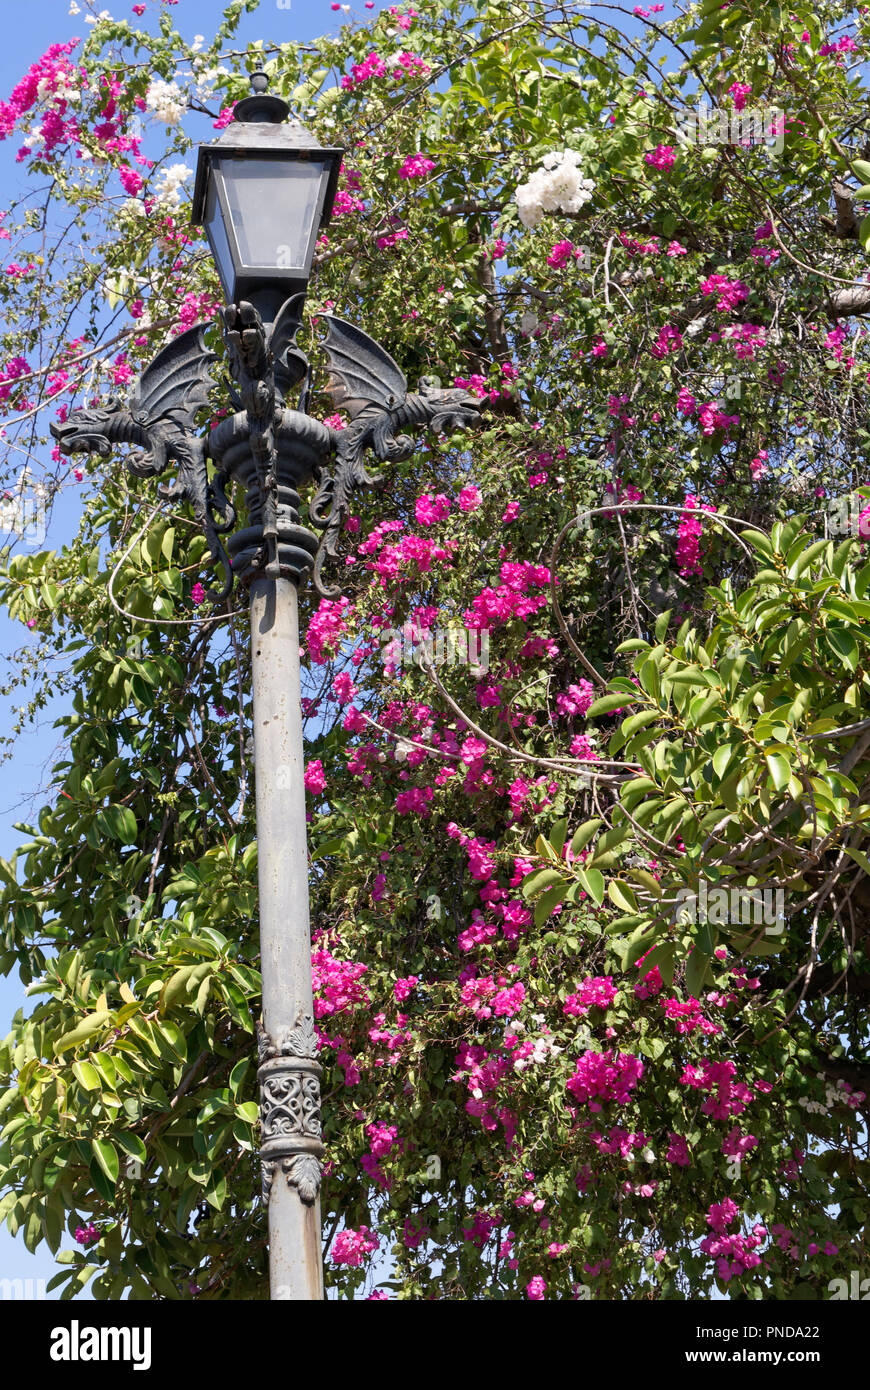 3eff75820 Chinese style dragons decorating a lamp post surrounded by bougainvillea  flowers, Old Mazatlan, Sinaloa